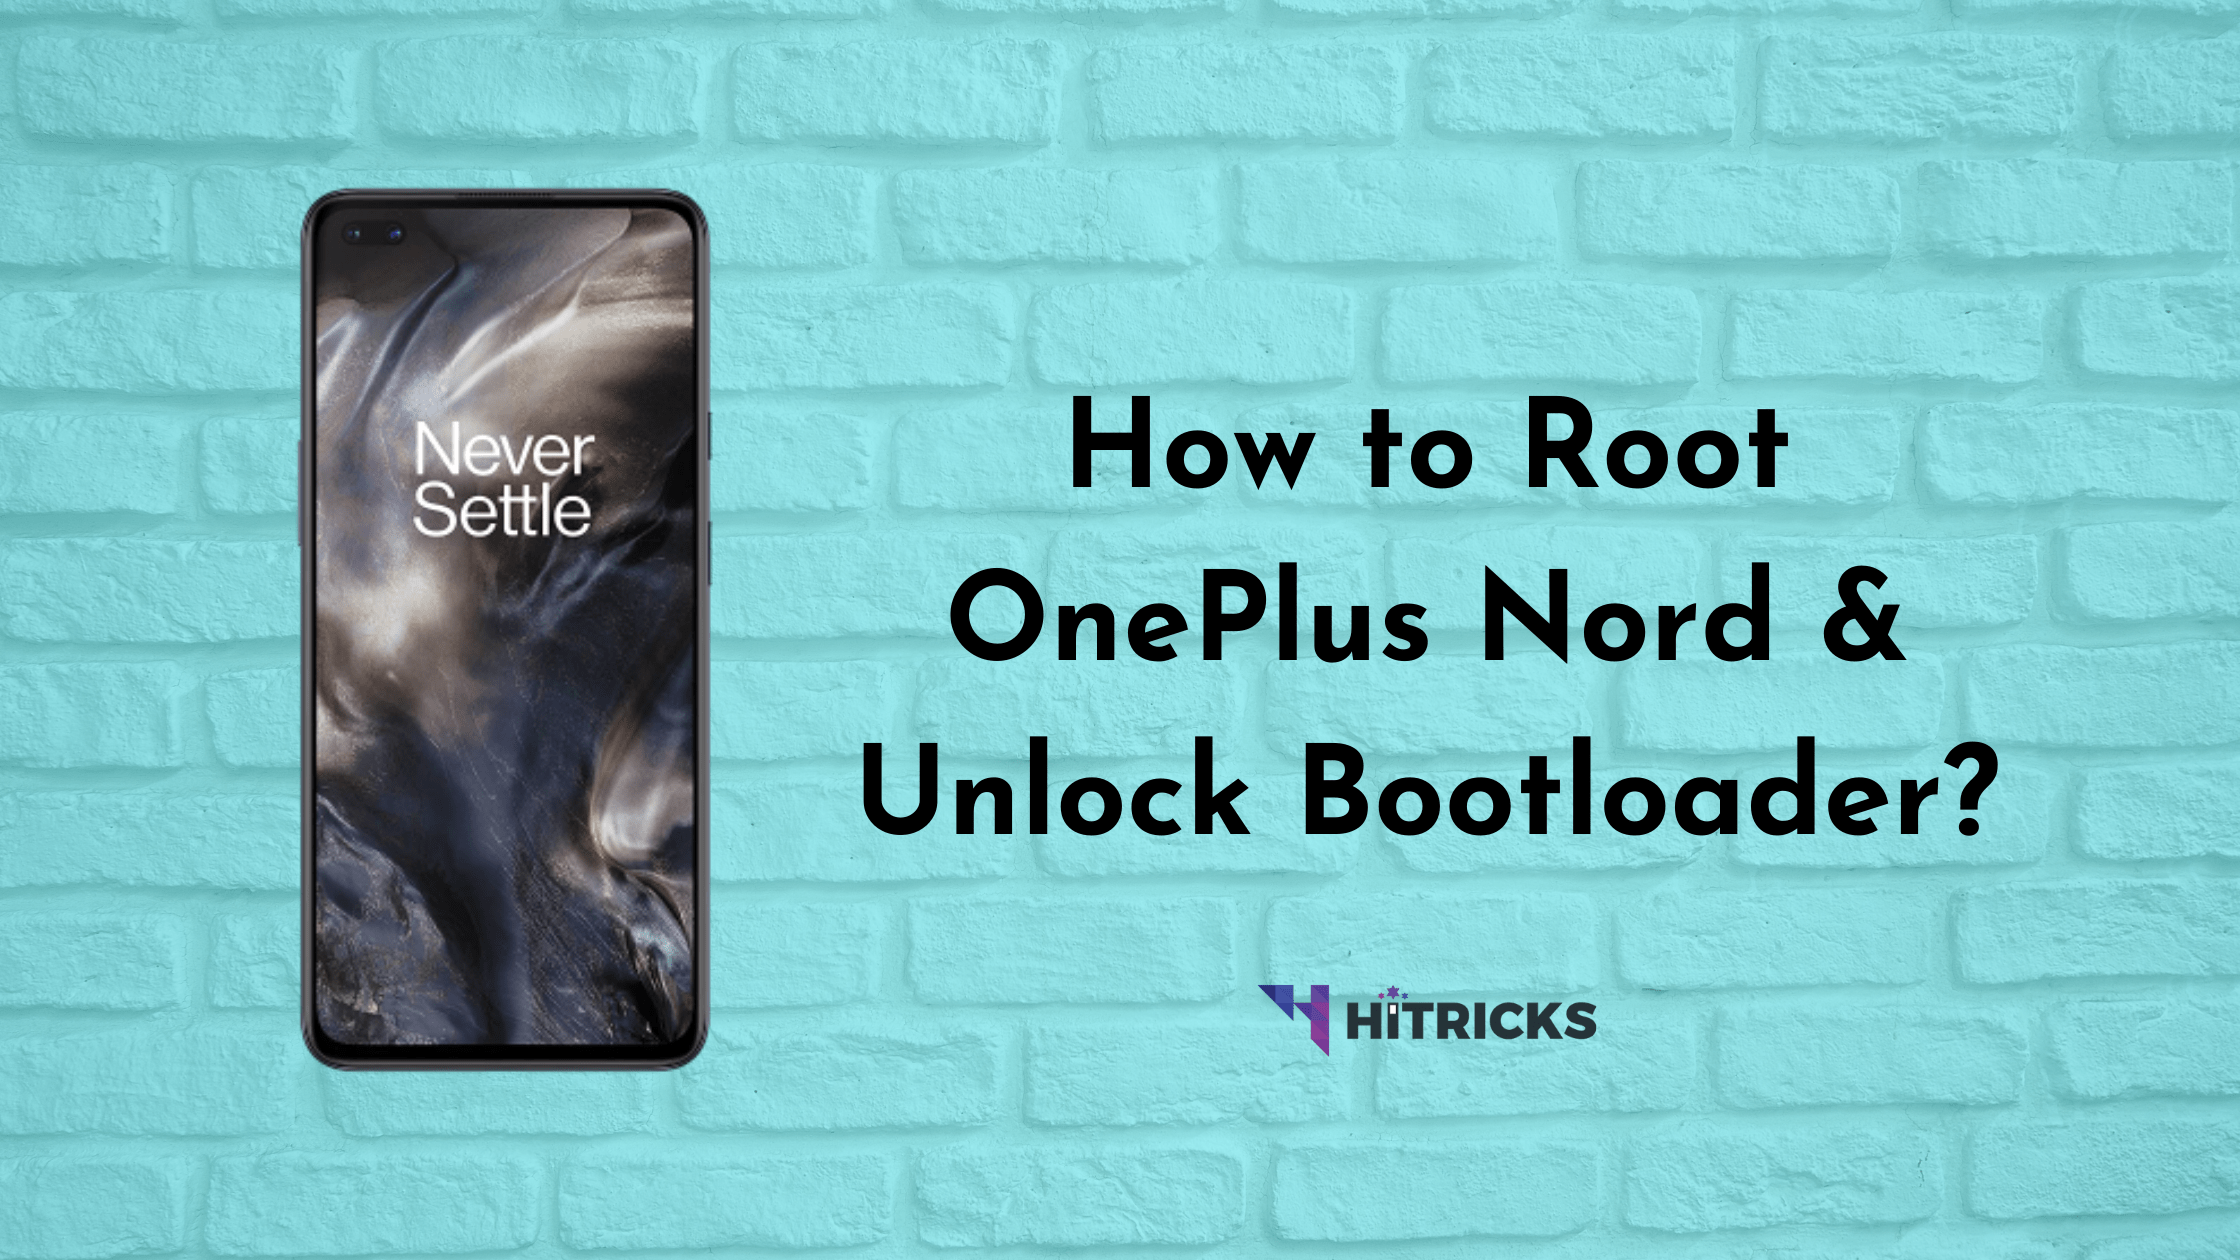 GUIDE: How to root OnePlus Nord & Unlock Bootloader?